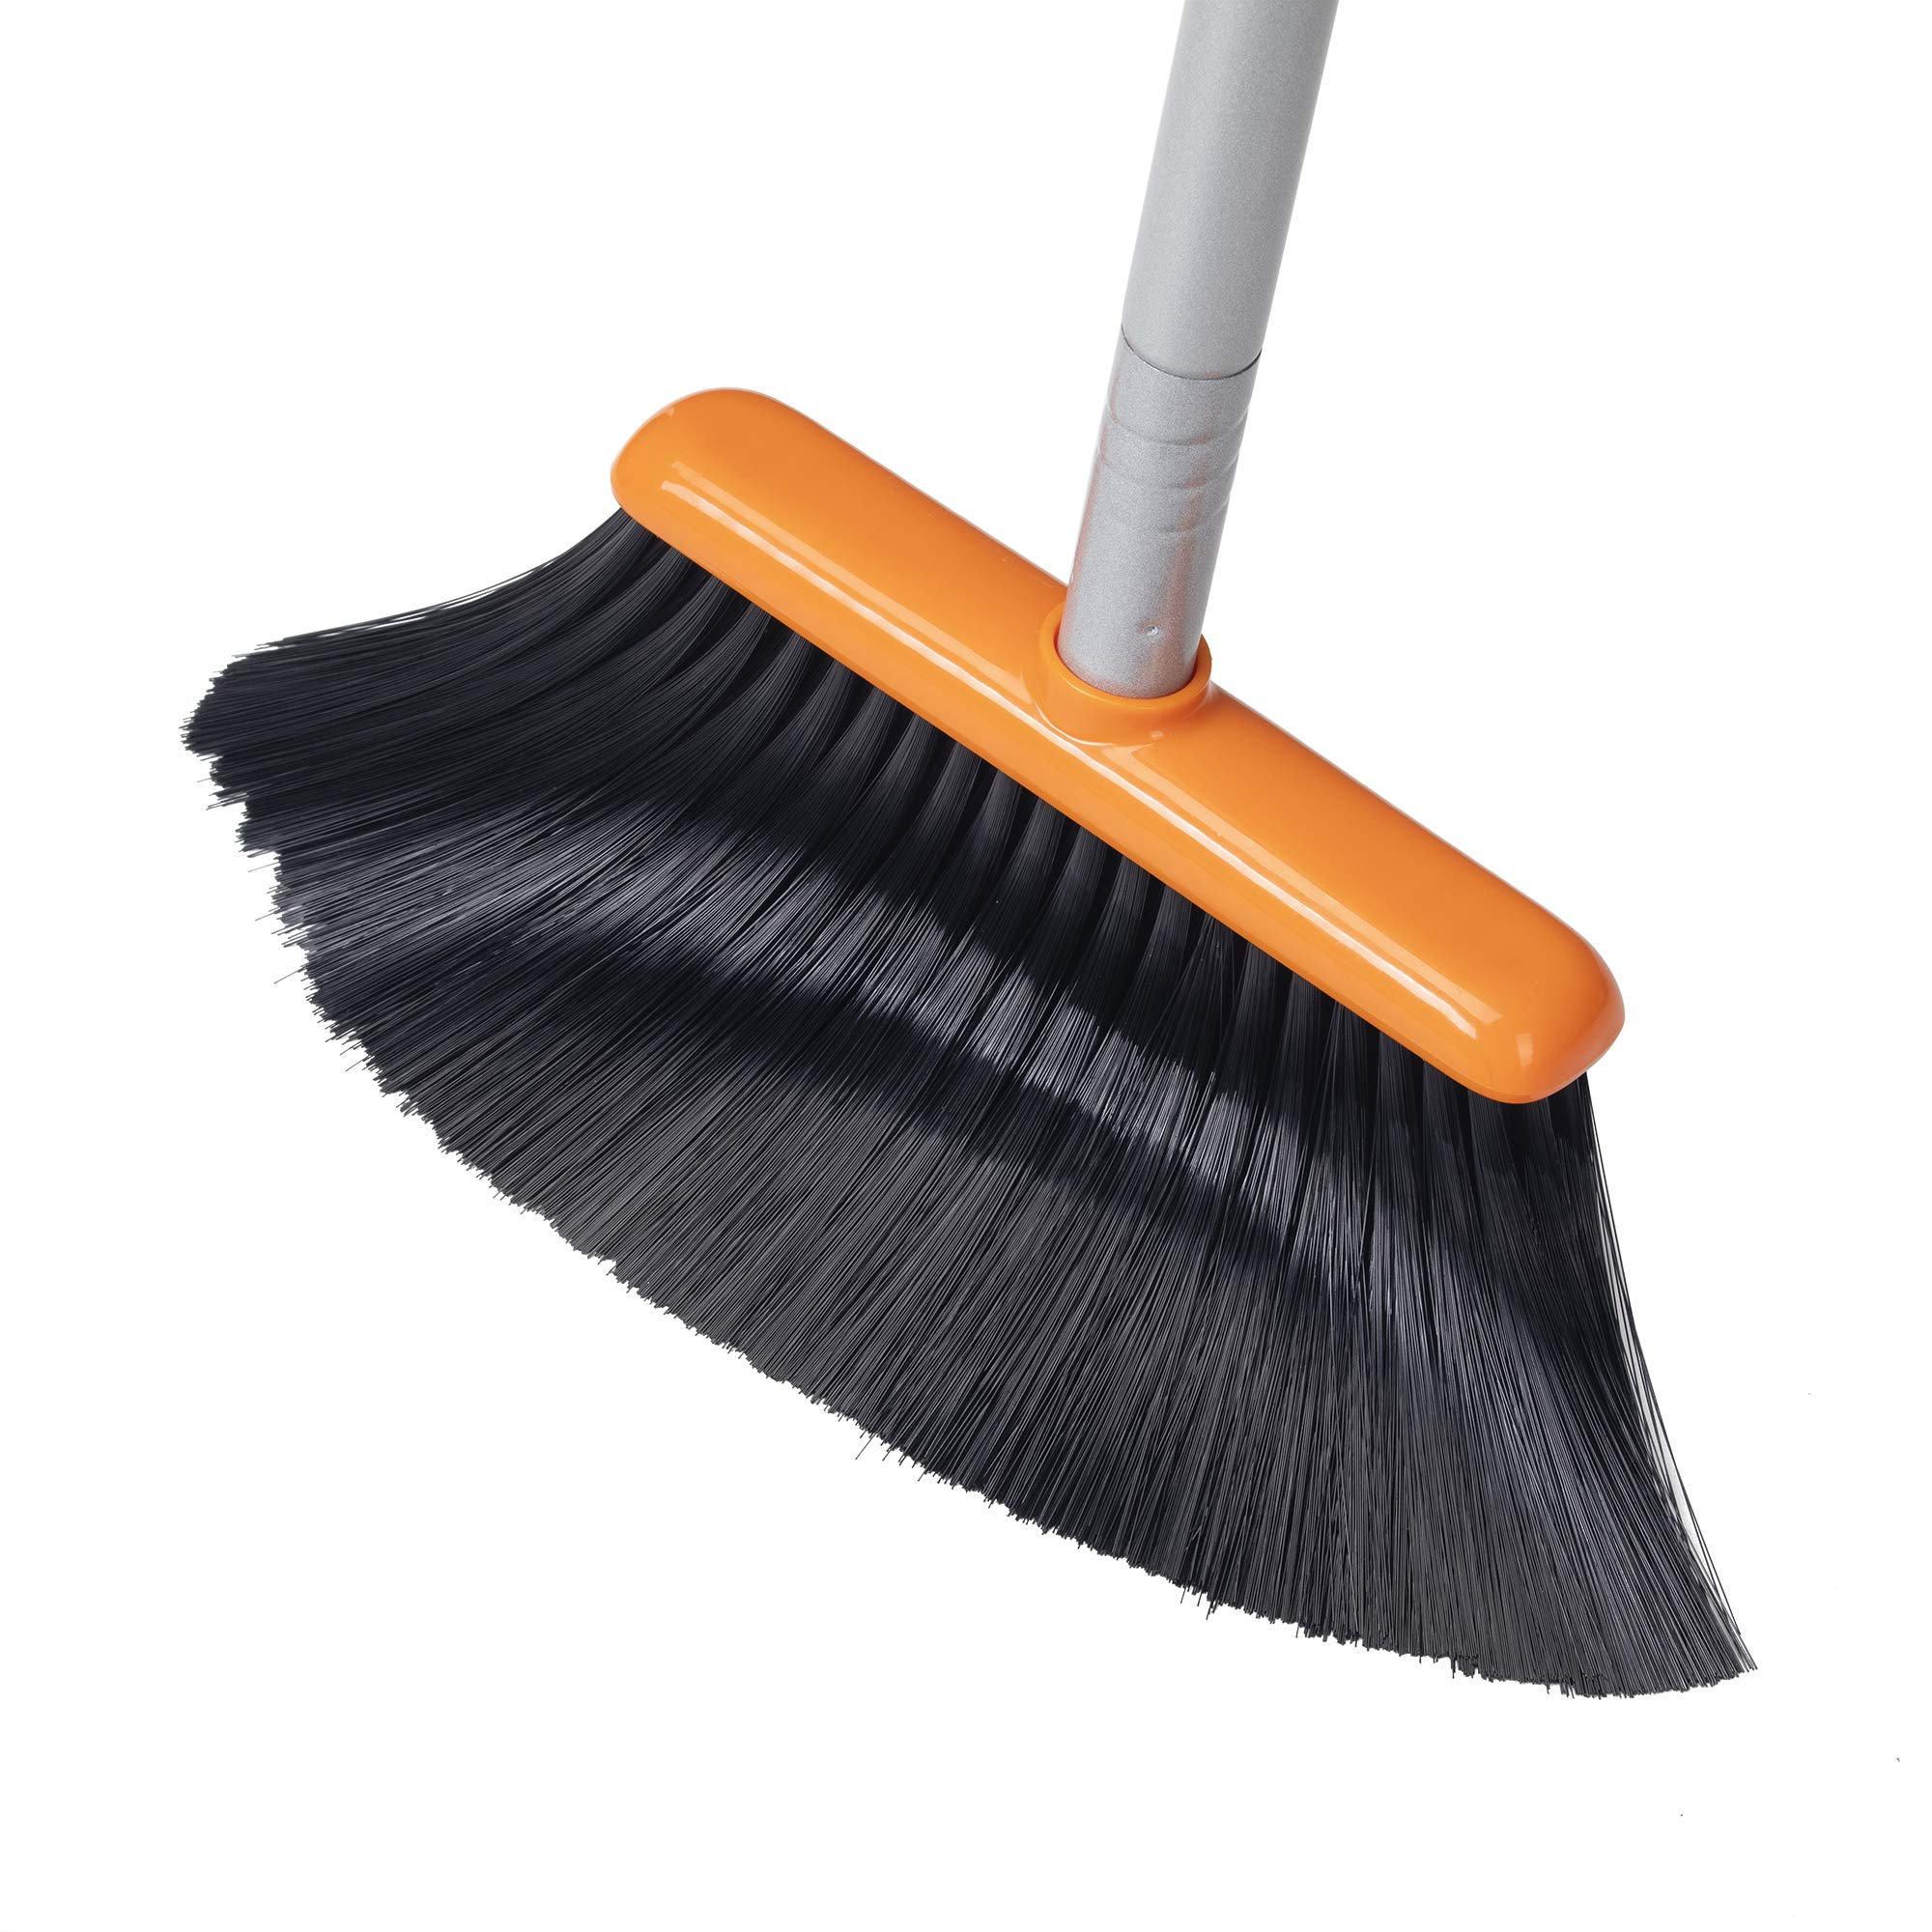 TooToo Broom and Dustpan Set, Sweep Set, Upright Broom and Dustpan Combo with 40''/54'' Long Extendable Handle for Household Cleaning Sweeping, Orange and Dark Grey by TooToo (Image #6)